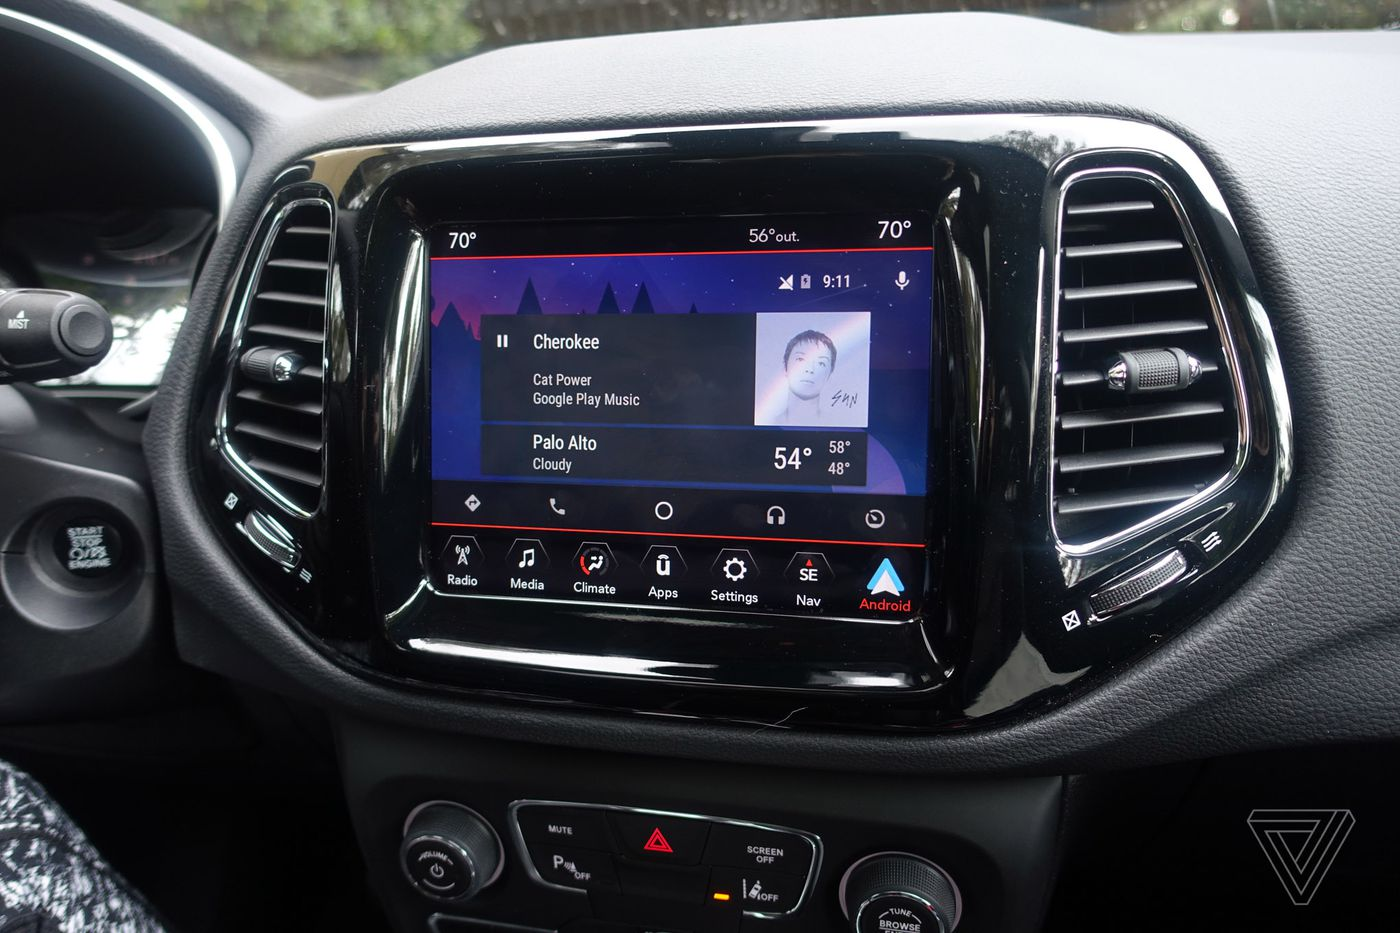 ScreenDrive: From a 'dumb' Jeep to one with the latest Uconnect